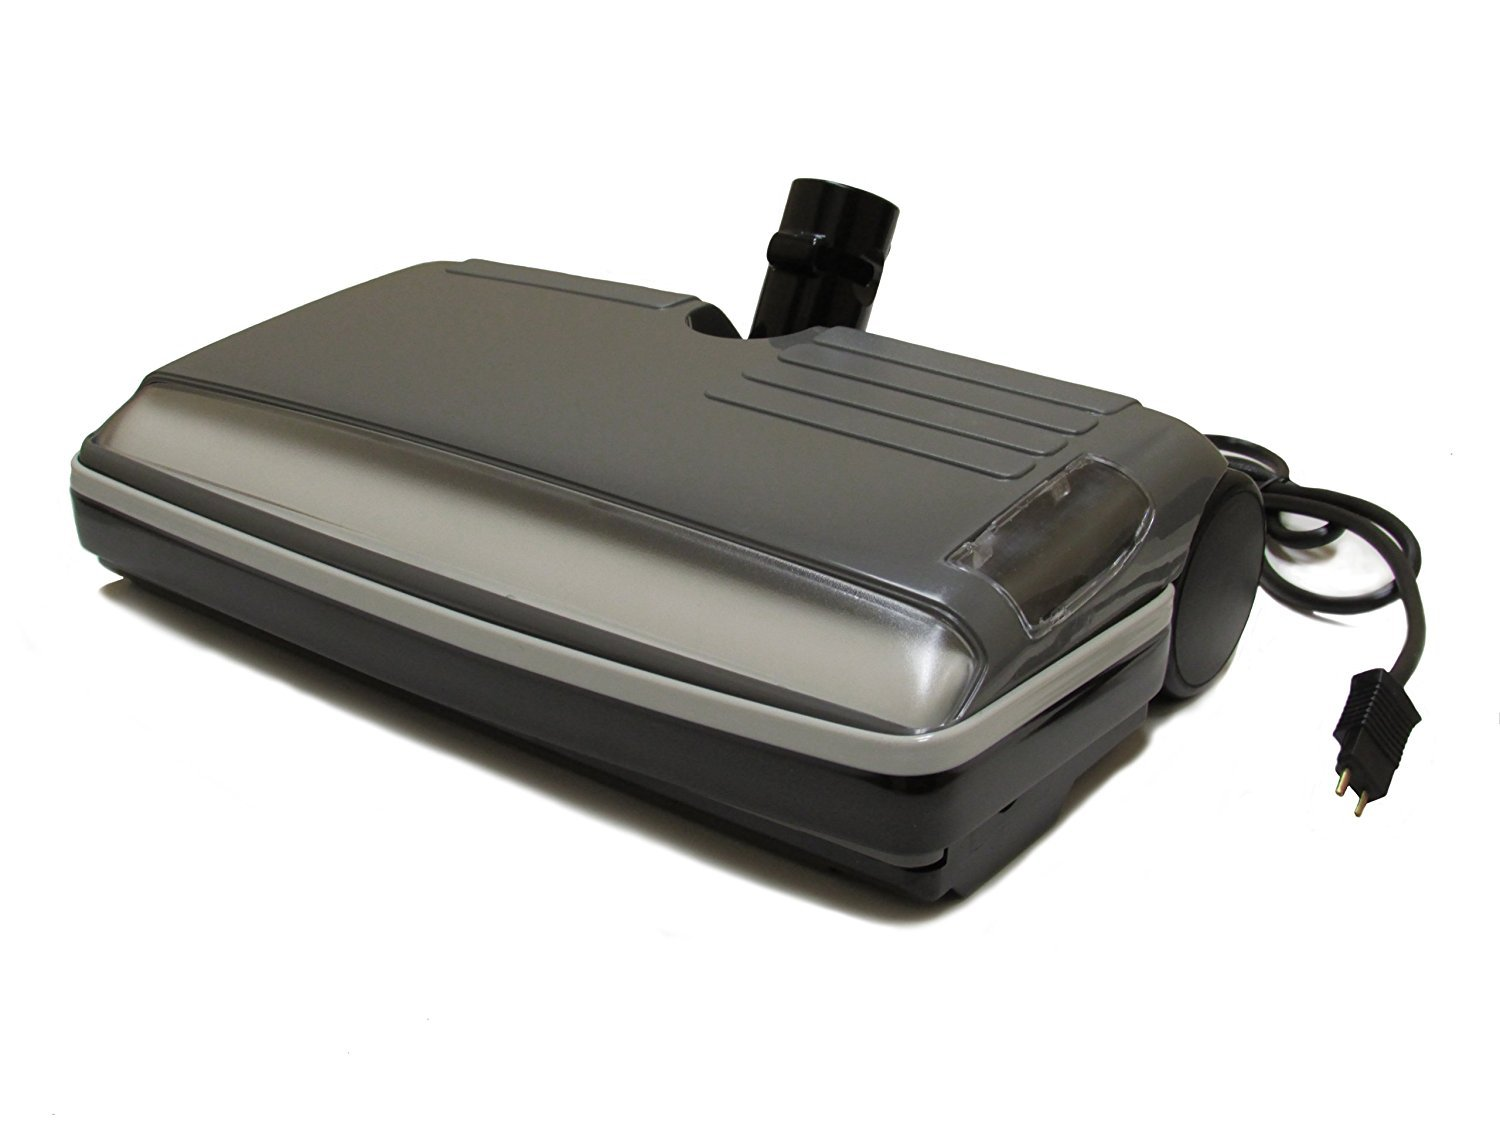 Beam Rug Master Plus Electric Central Vacuum Powerhead By Electrolux by Electrolux   B01CFLXB84